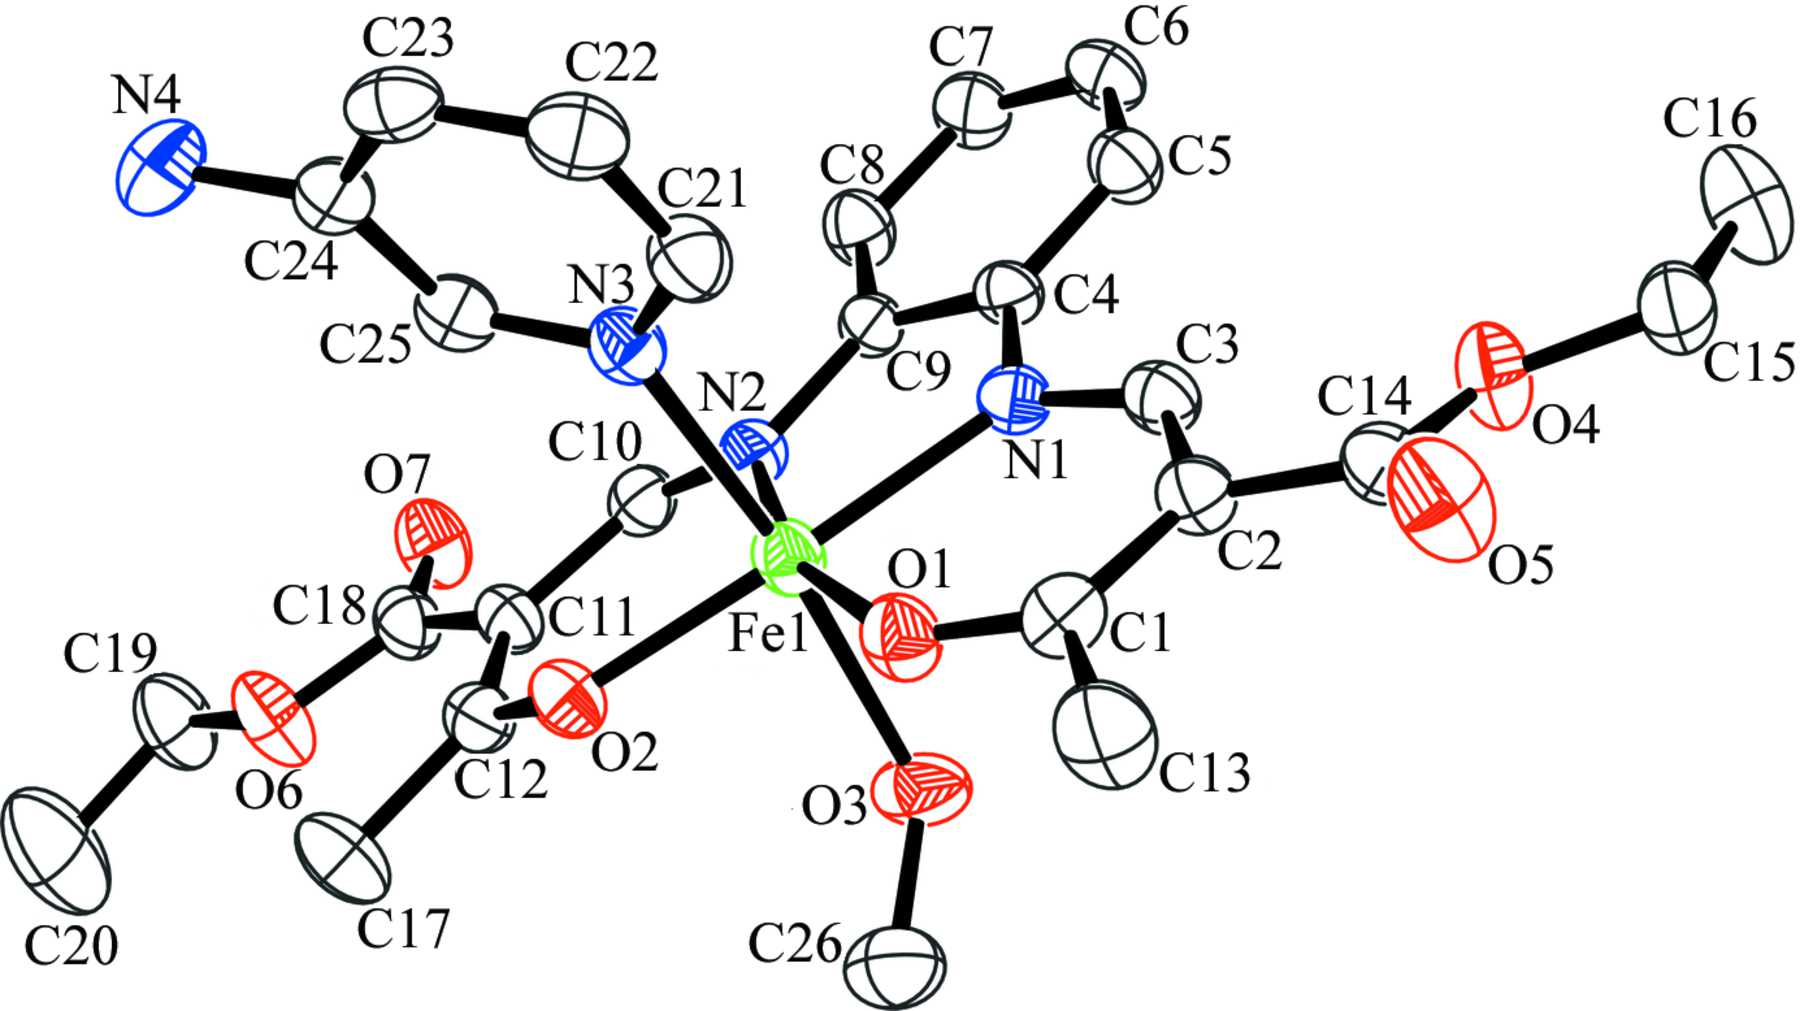 iucr magnetism and crystal structure of an n span class inf sub Atomic Composition figure 1